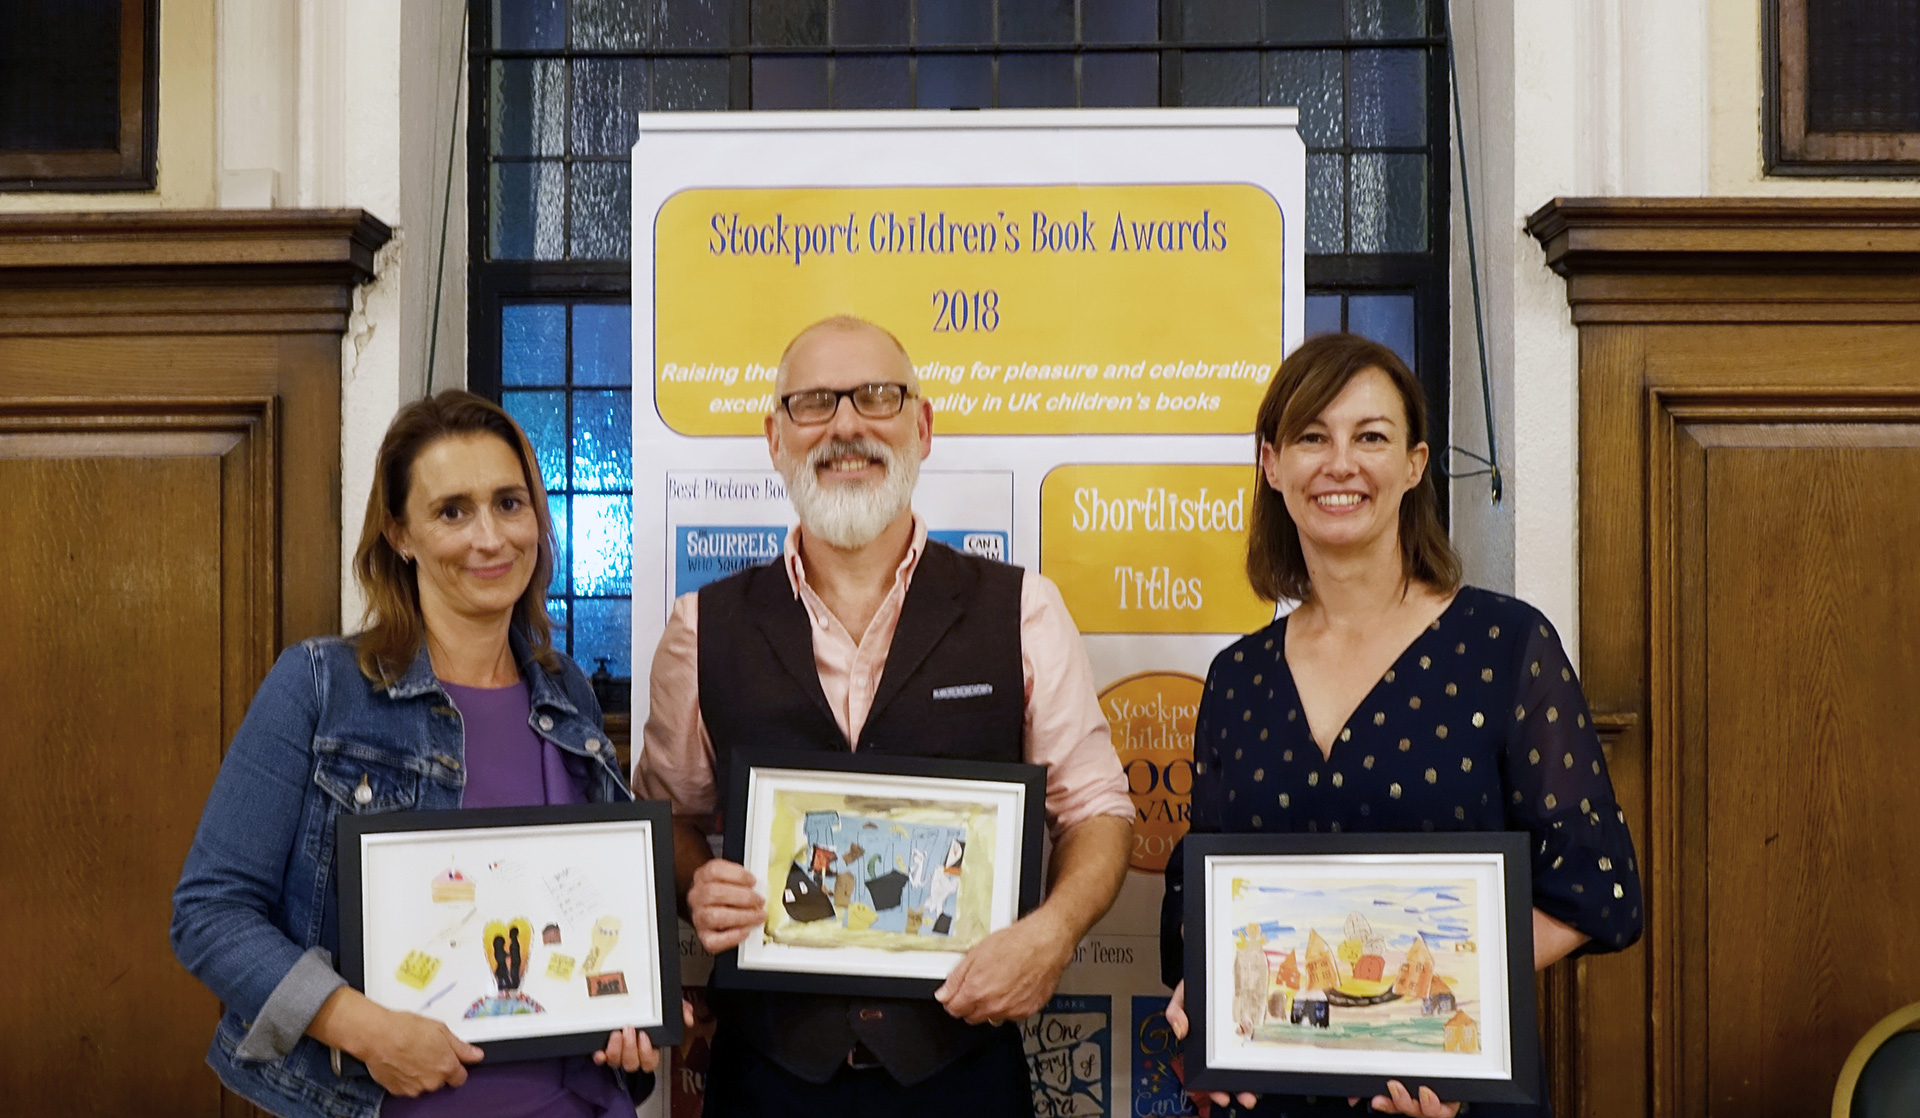 Winners of Stockport Children's Book Awards 2018